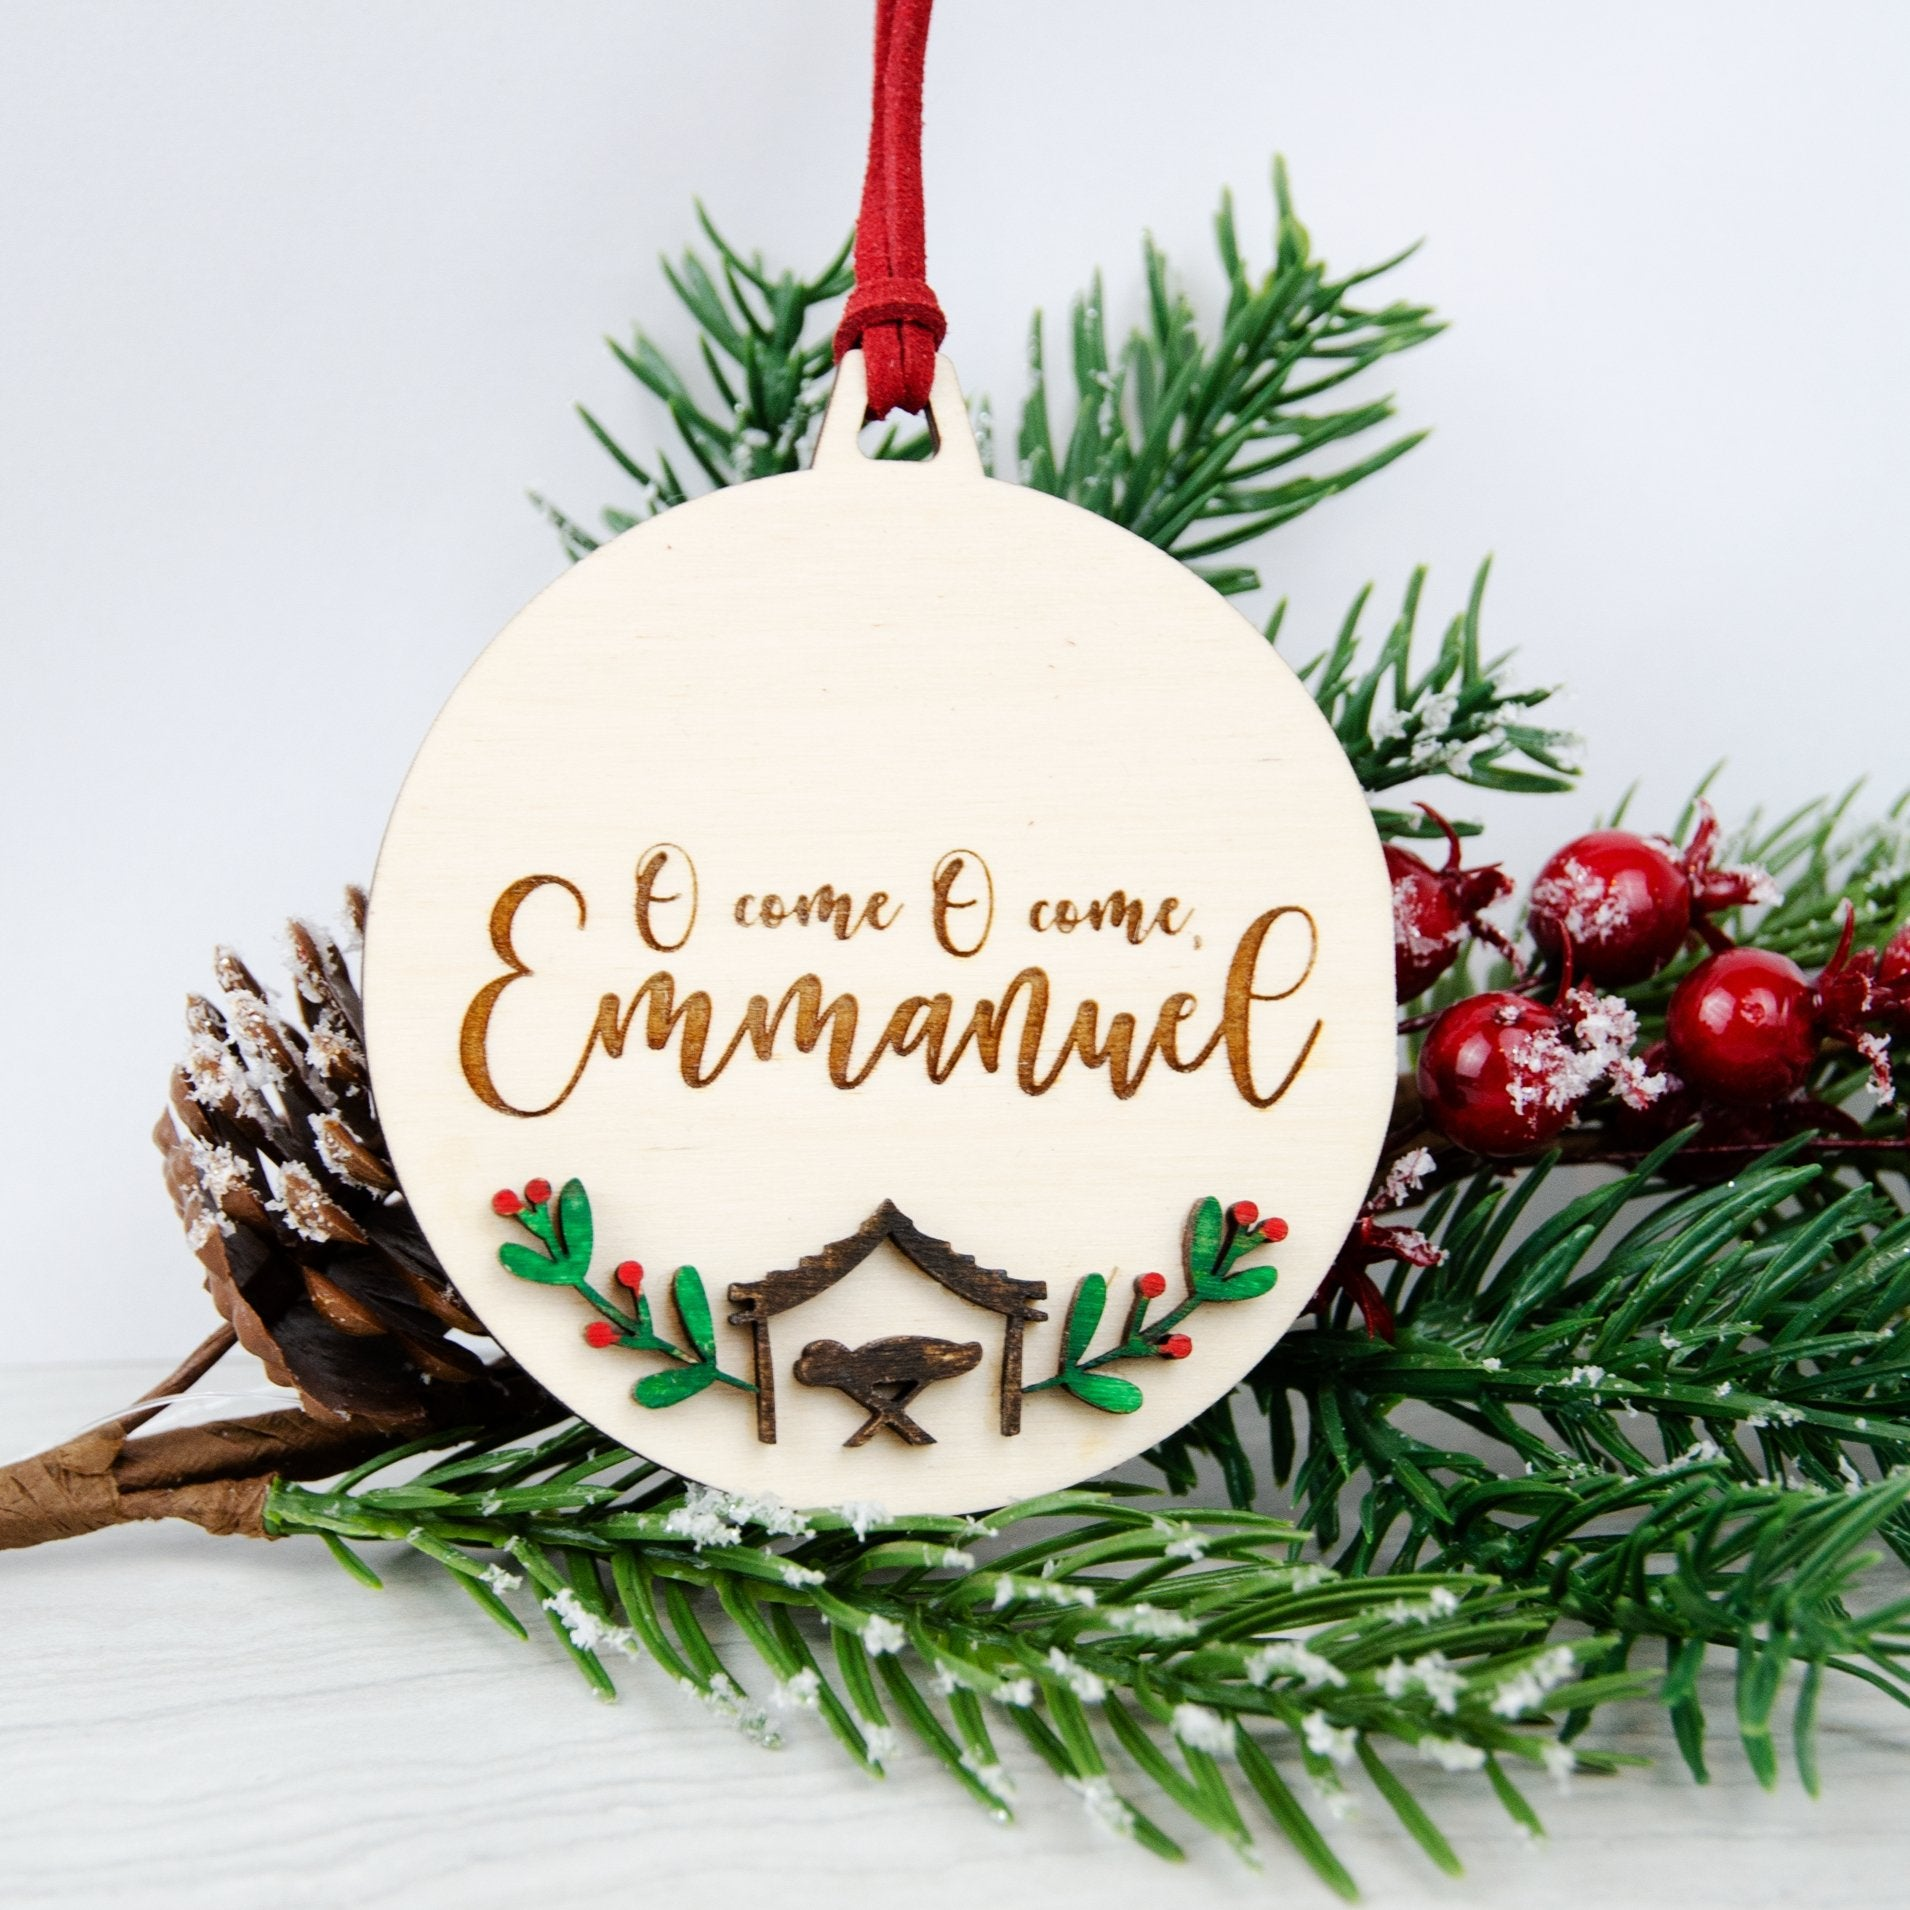 O come Emmanuel wooden painted bauble decoration